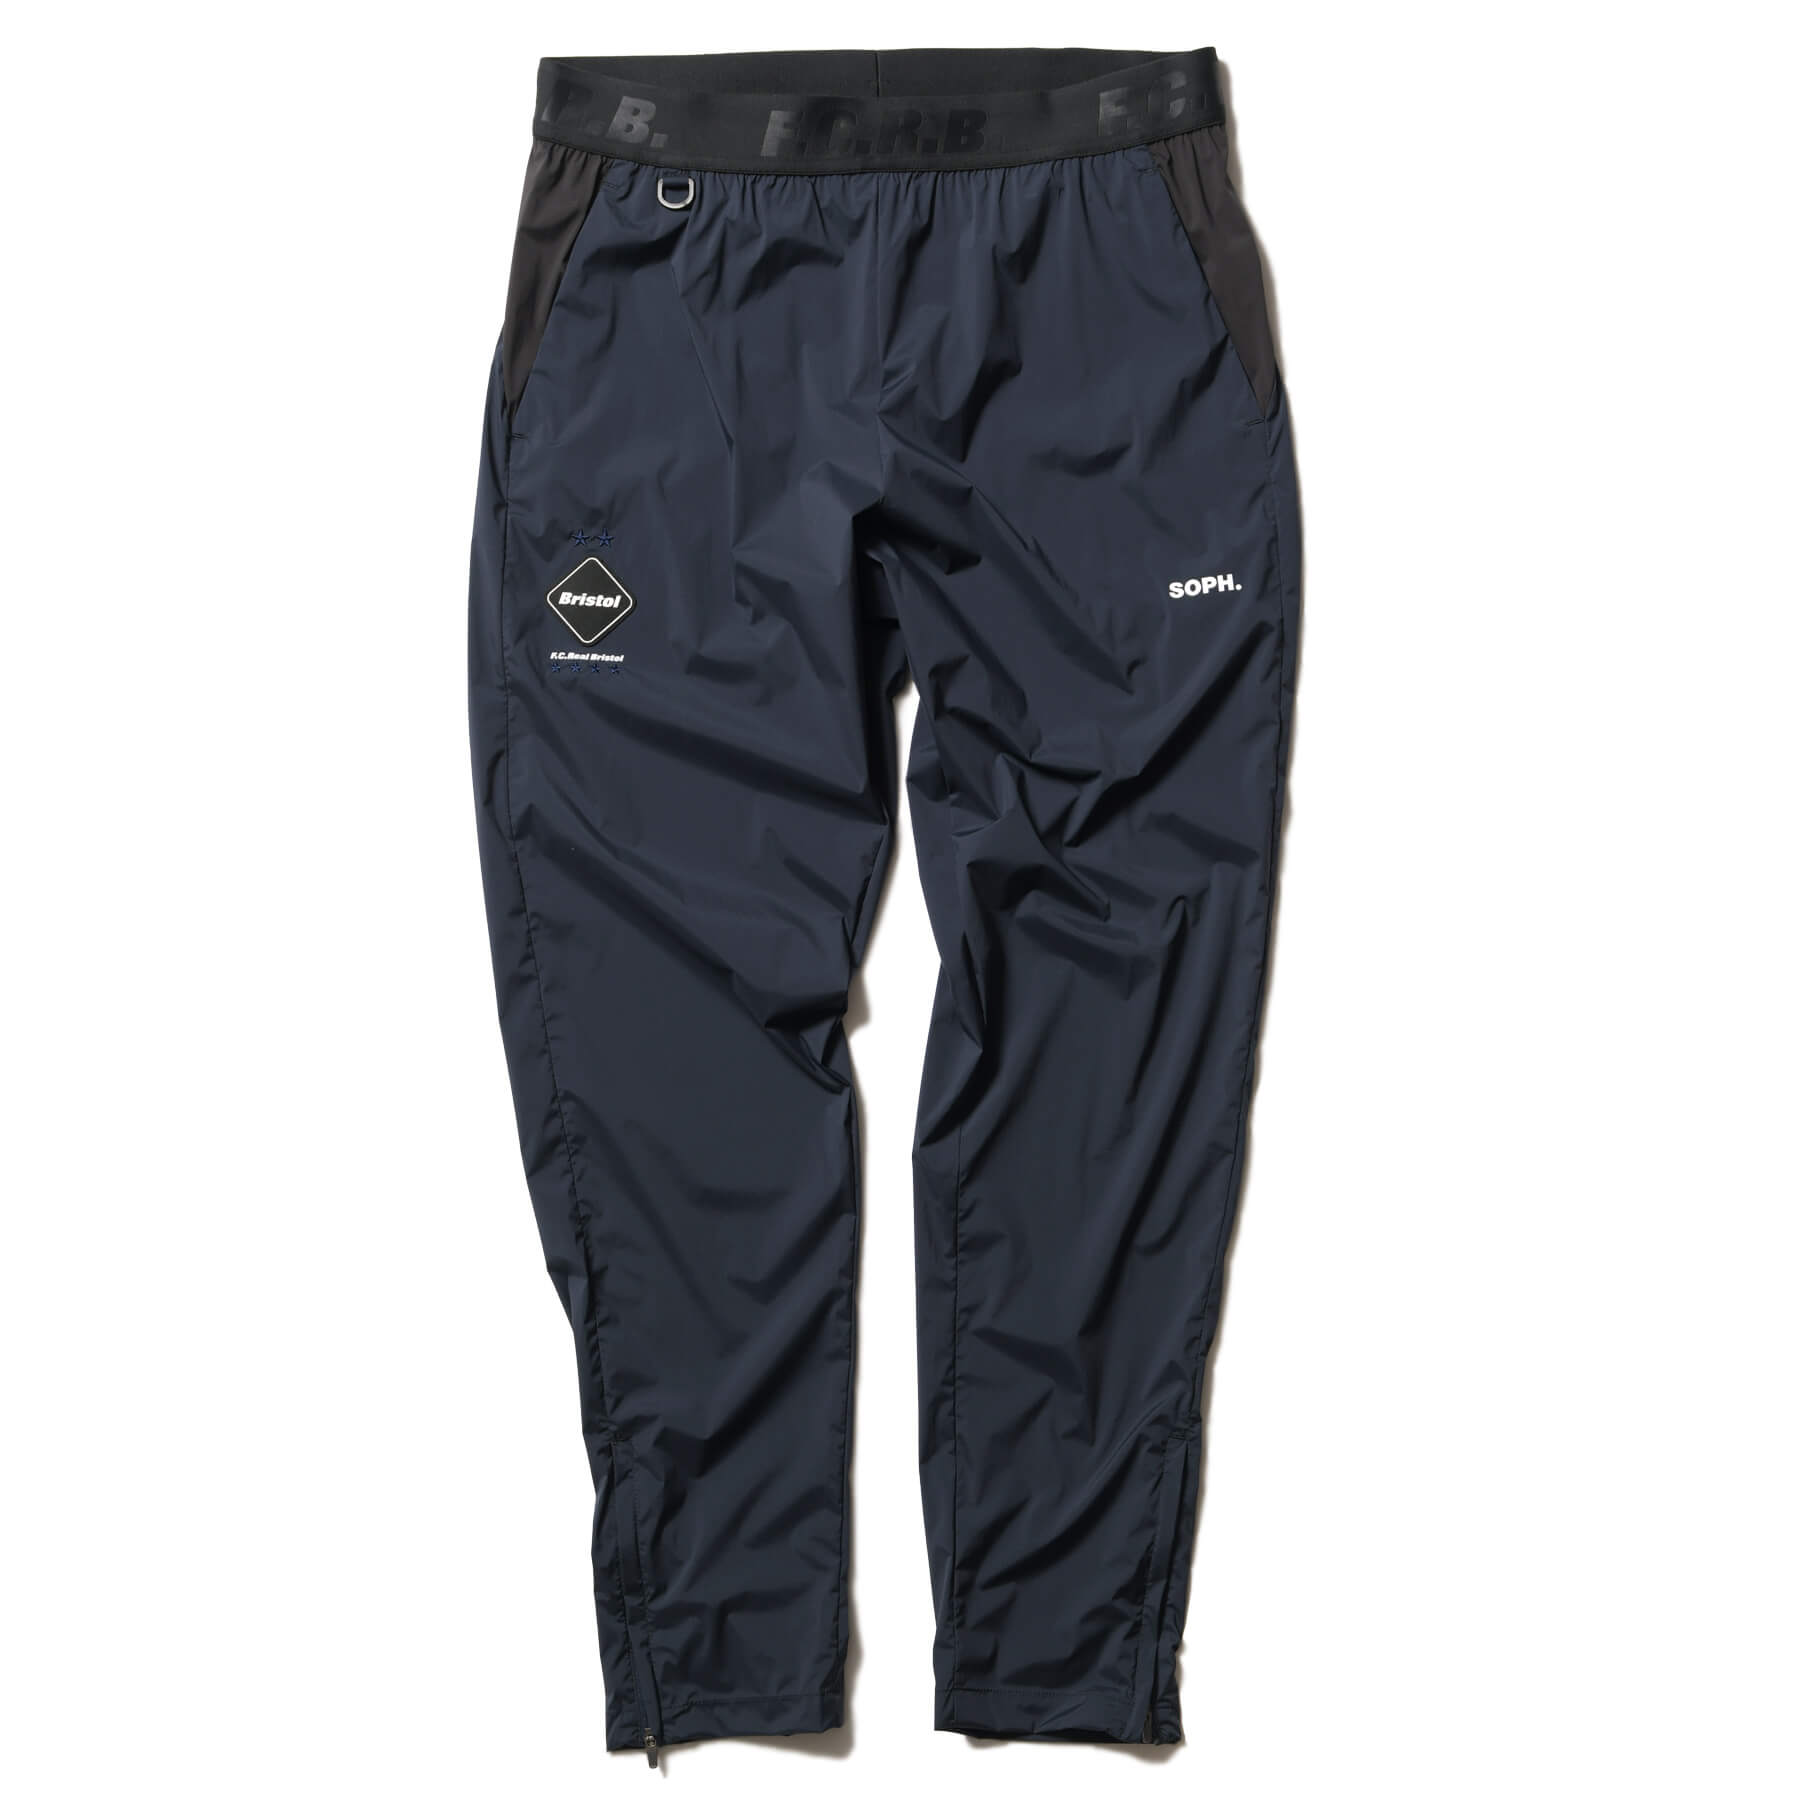 F.C. Real Bristol April 13 2020 S/S Drop Stretch Light Weight Easy Pants